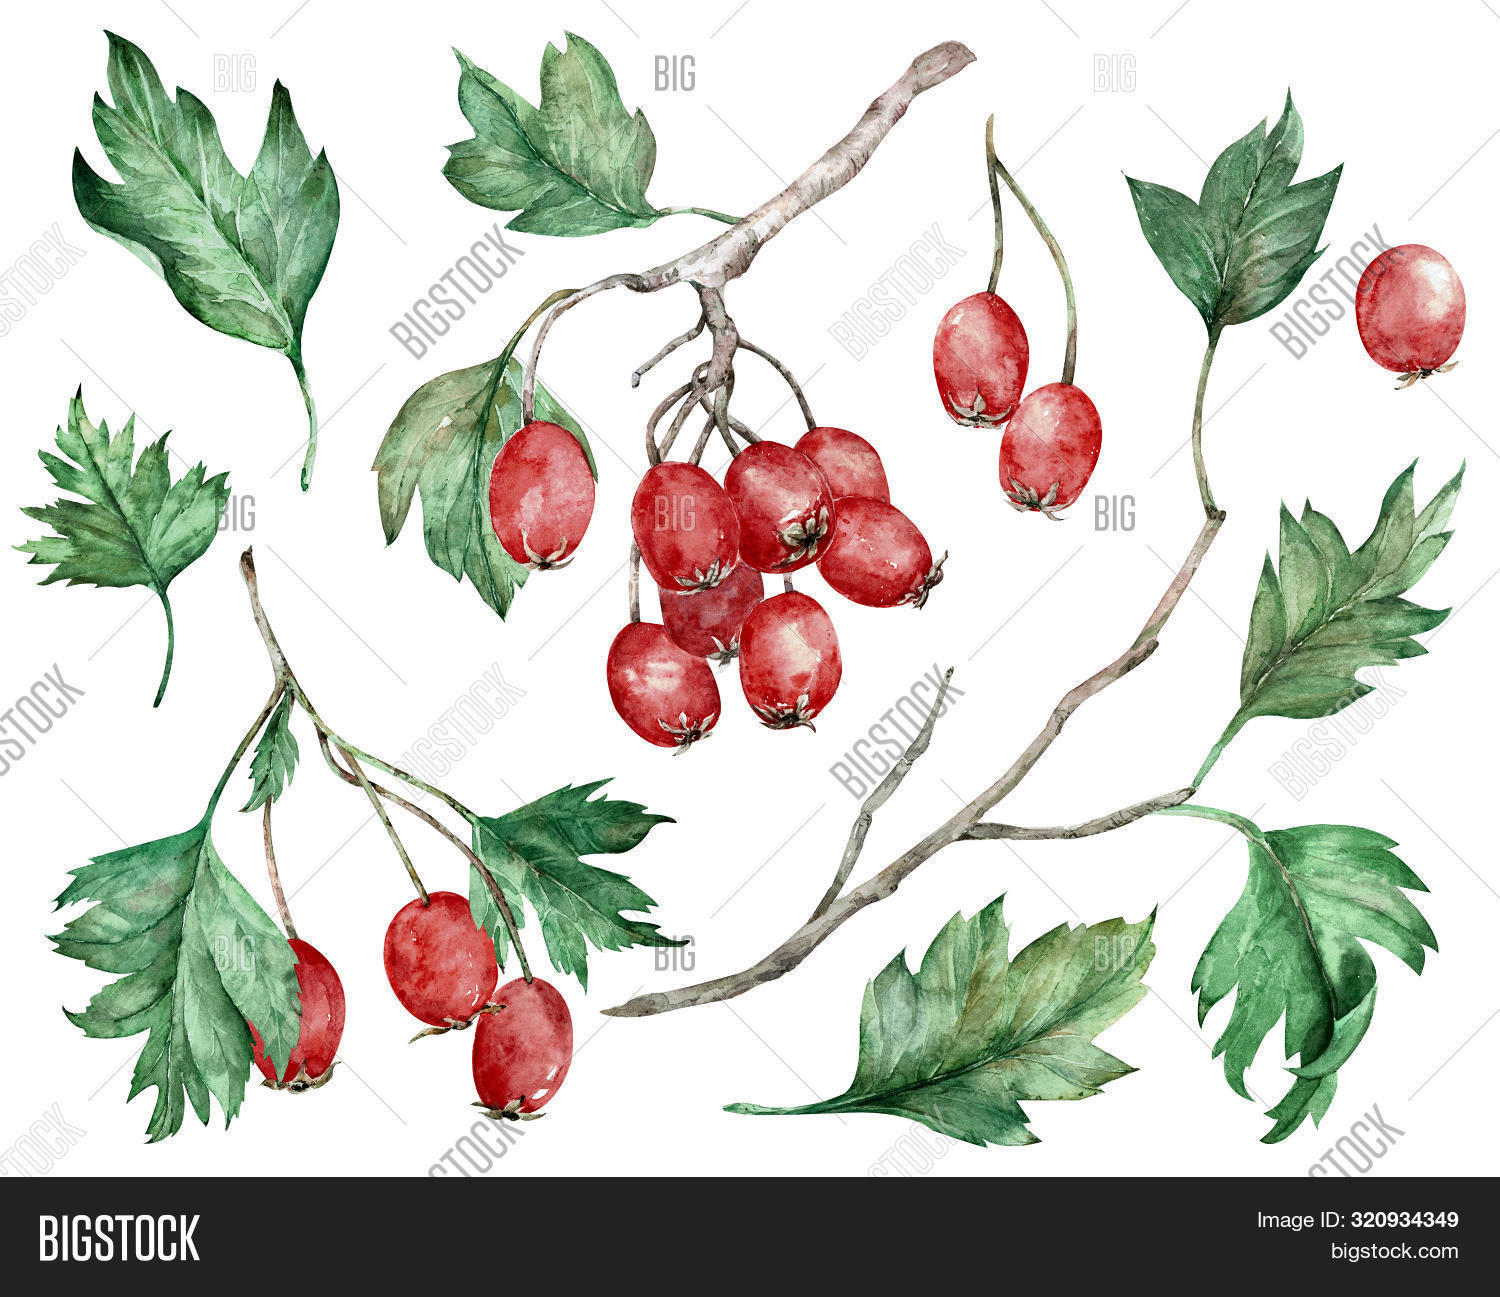 antioxidant,aromatherapy,asia,autumn,background,berry,botanical,branch,bush,clipart,color,drawing,eco,element,evergreen,fall,floral,food,fruit,green,haw,hawberry,hawthorn,health,herb,homeopathic,illustration,ingredient,juice,leaf,mayhaw,medical,natural,object,organic,paint,plant,red,ripe,scarlet,shrub,summer,sweet,therapy,thorn,vegetarian,vitamin,watercolor,whitethorn,wild